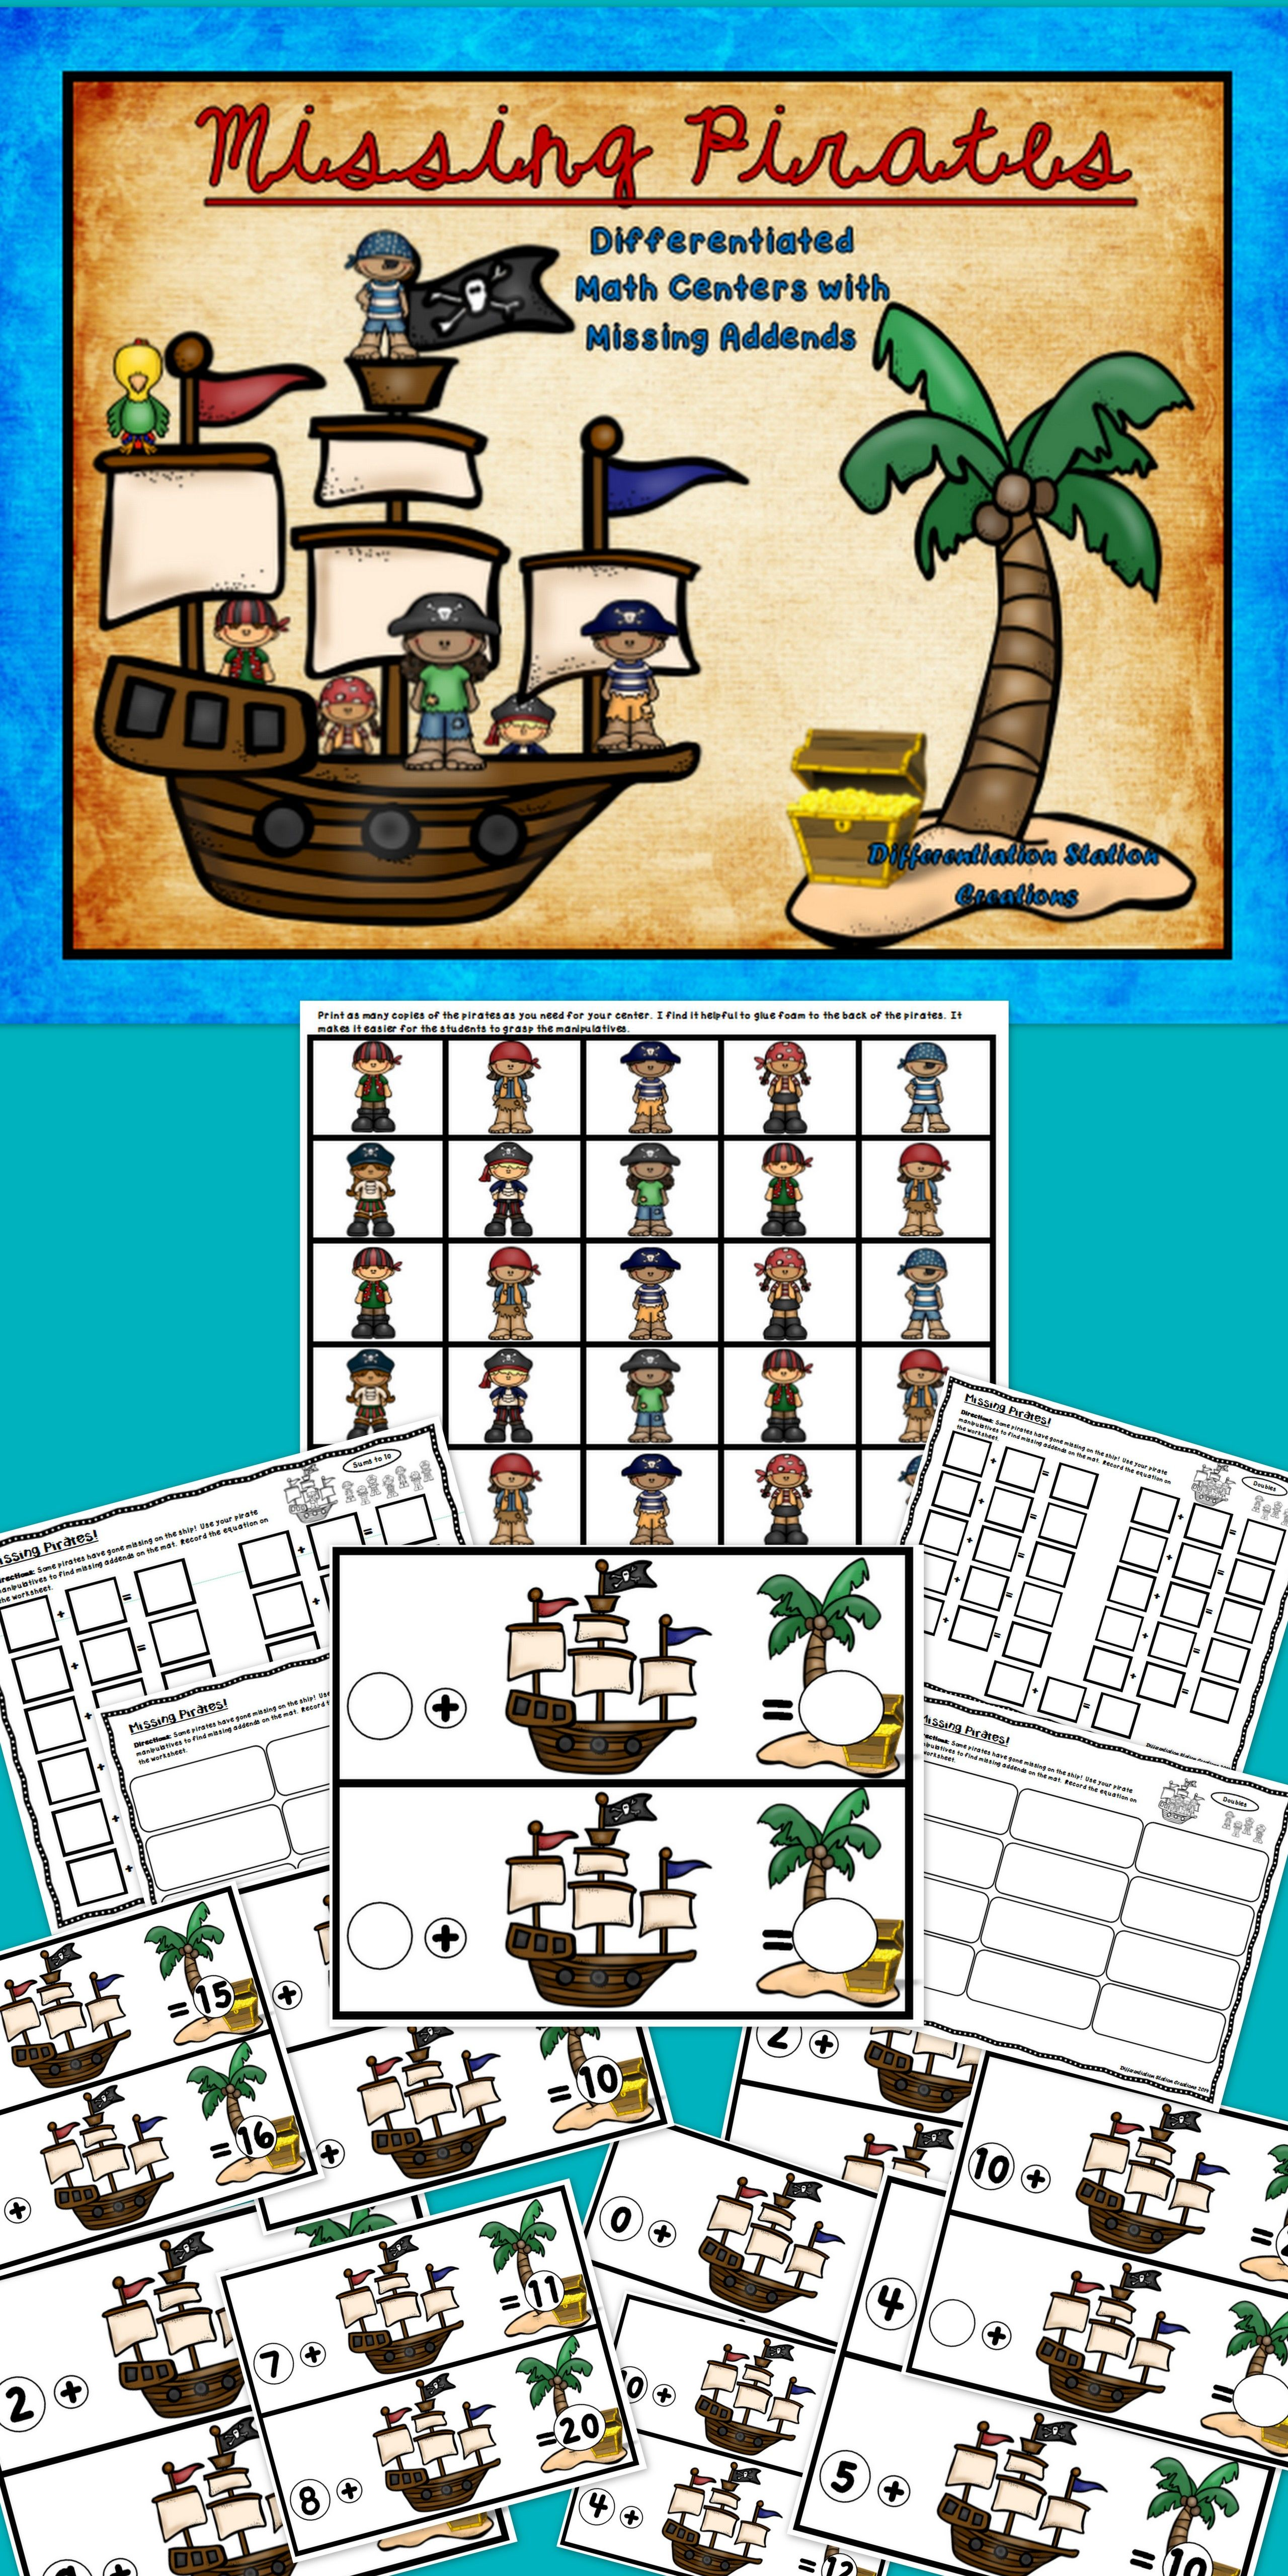 Missing Pirates Math Centers With Missing Addends